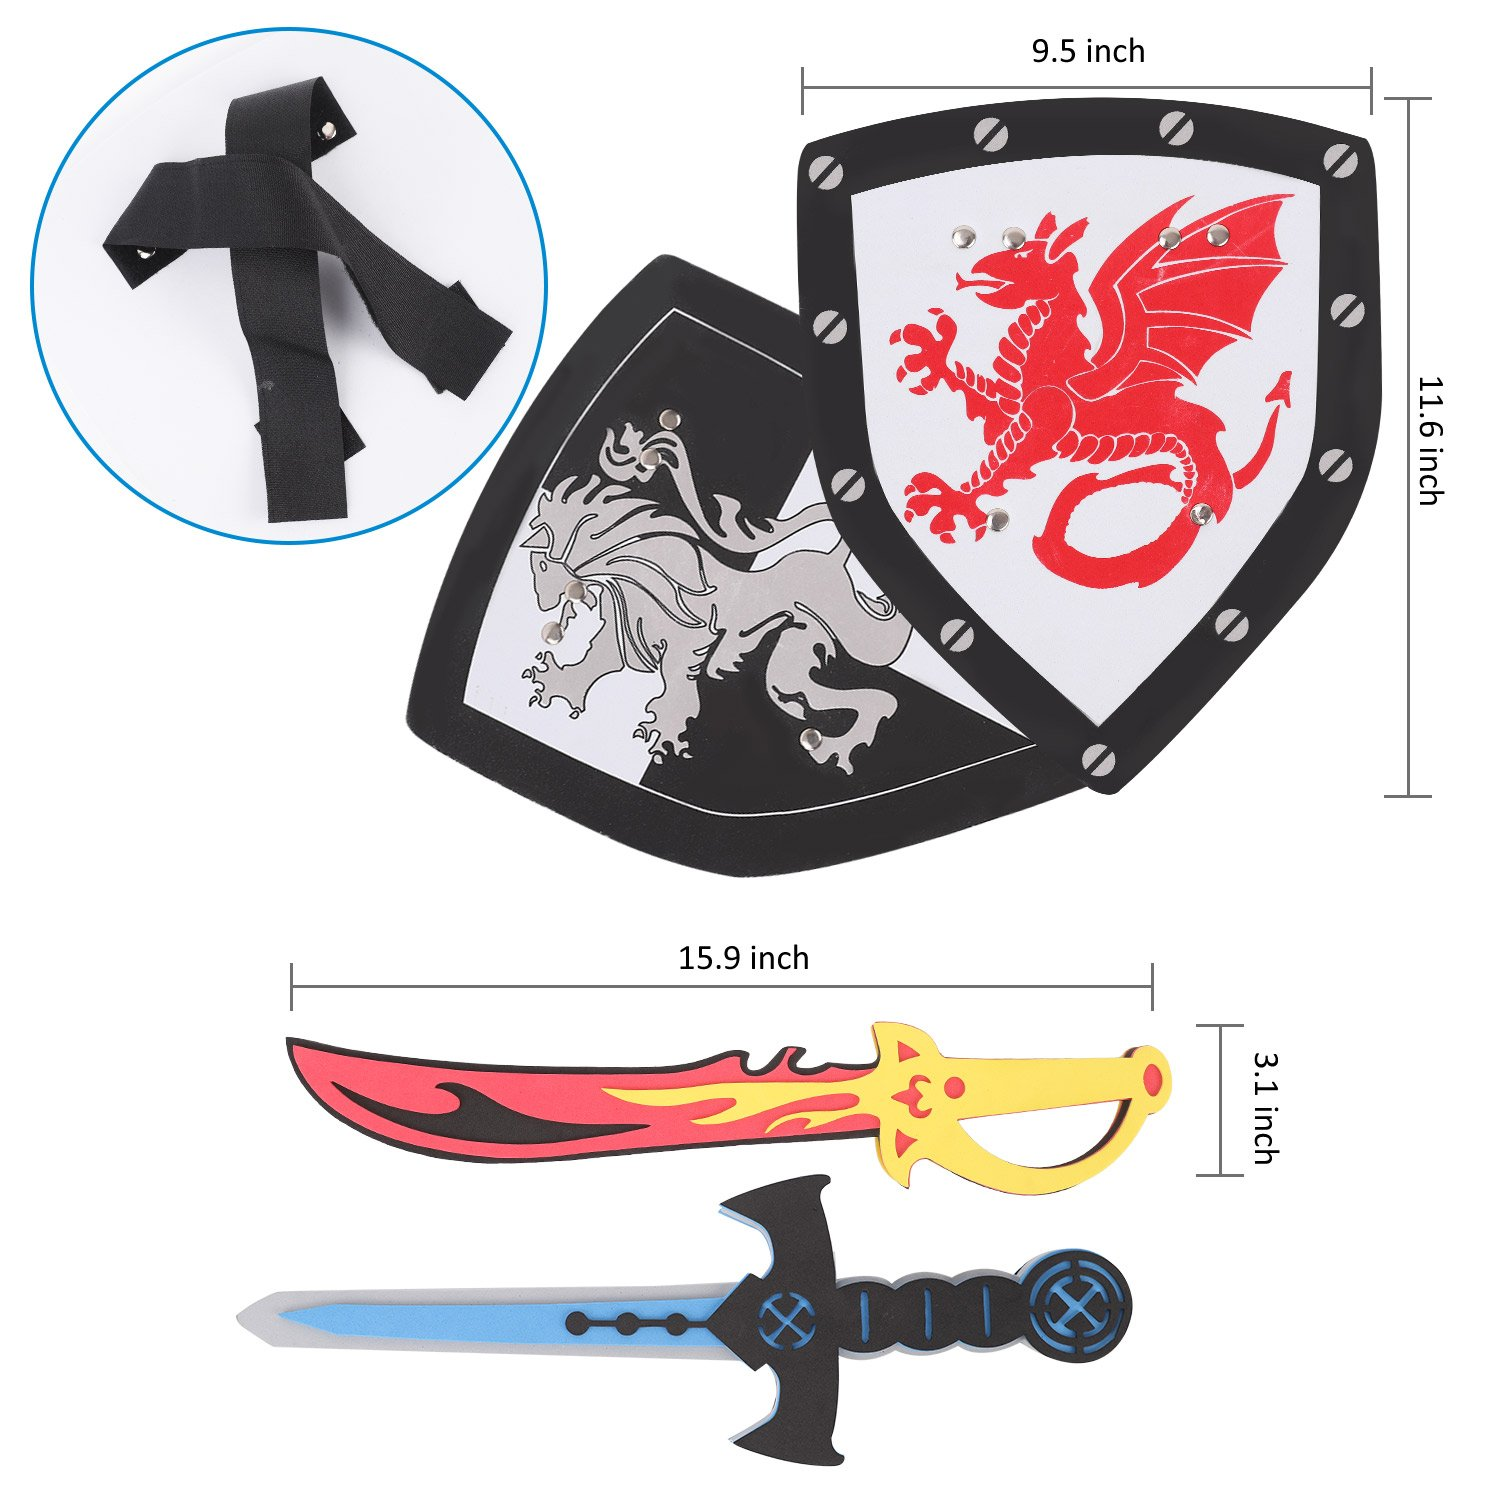 Lightweight safe diy foam sword and shield toy sets for kids party activities